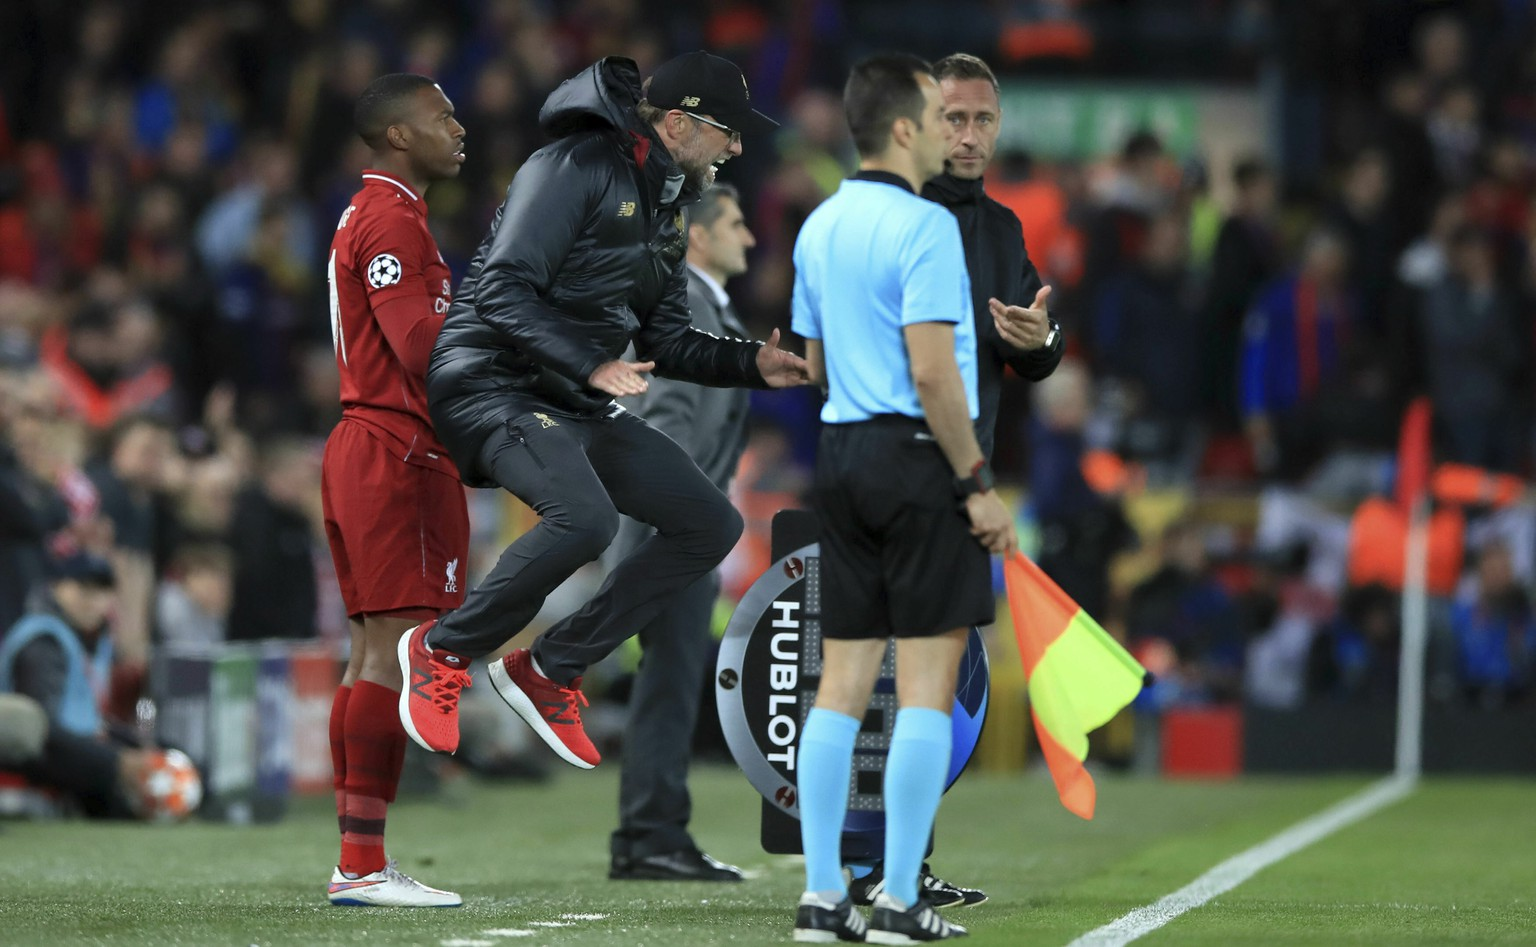 Liverpool manager Jurgen Klopp gestures on the touchline during the Champions League Semi Final, second leg soccer match between Liverpool and Barcelona at Anfield, Liverpool, England, Tuesday, May 7, 2019. Liverpool won the match 4-0 to overturn a three-goal deficit to win the match 4-3 on aggregate. (Peter Byrne/PA via AP)